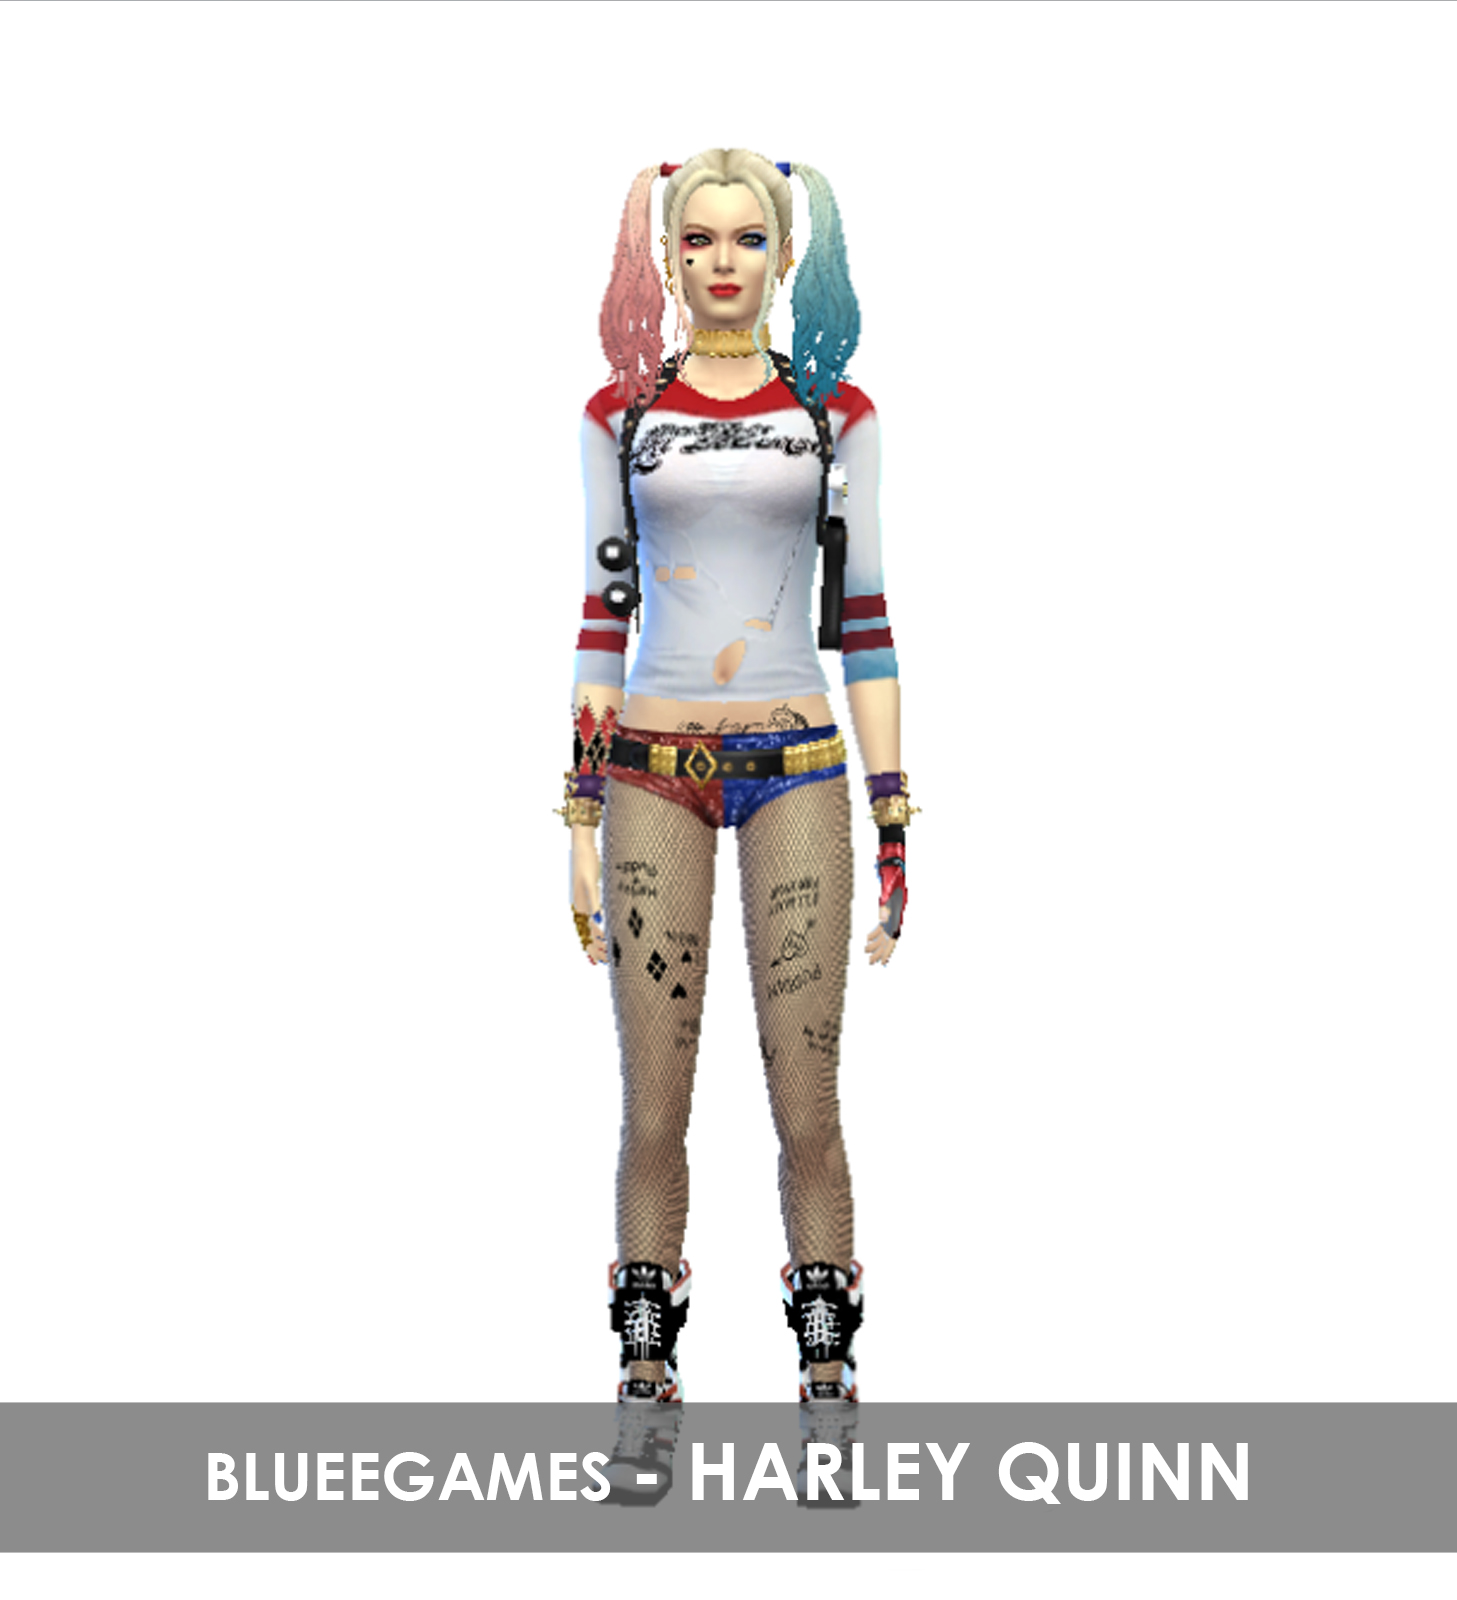 House Building Games Like The Sims Suicide Squad Harley Quinn Margot Robbie Sim